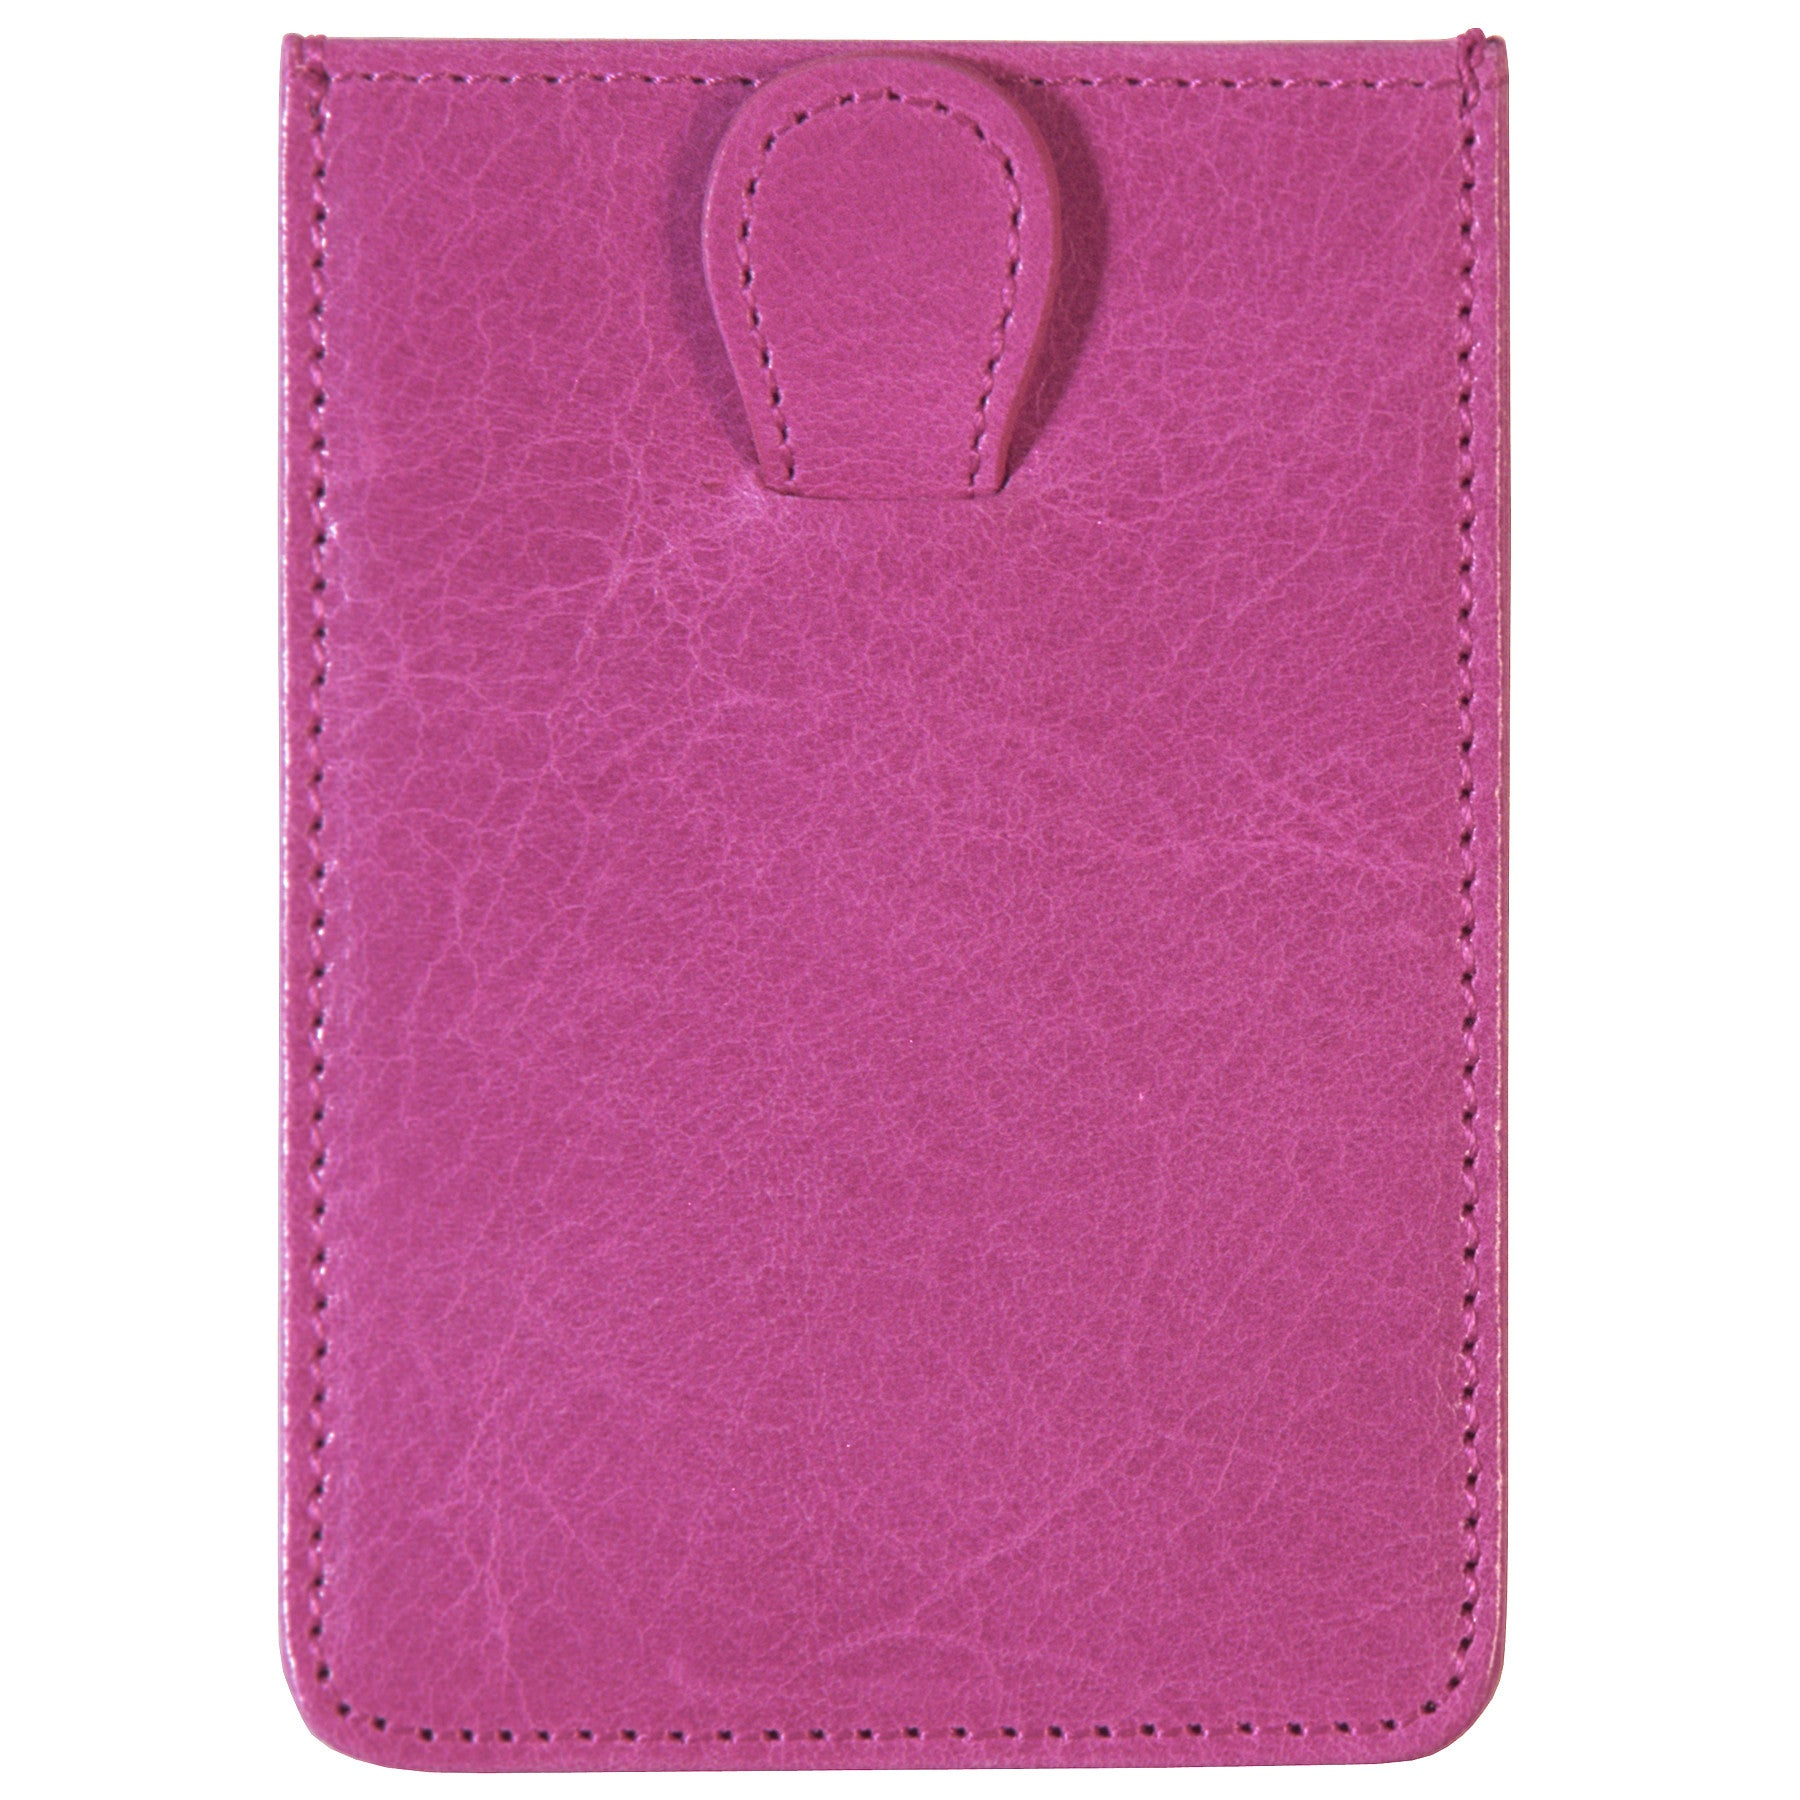 Pull Tab Business Card Holders – Alicia Klein Taxi Wallet